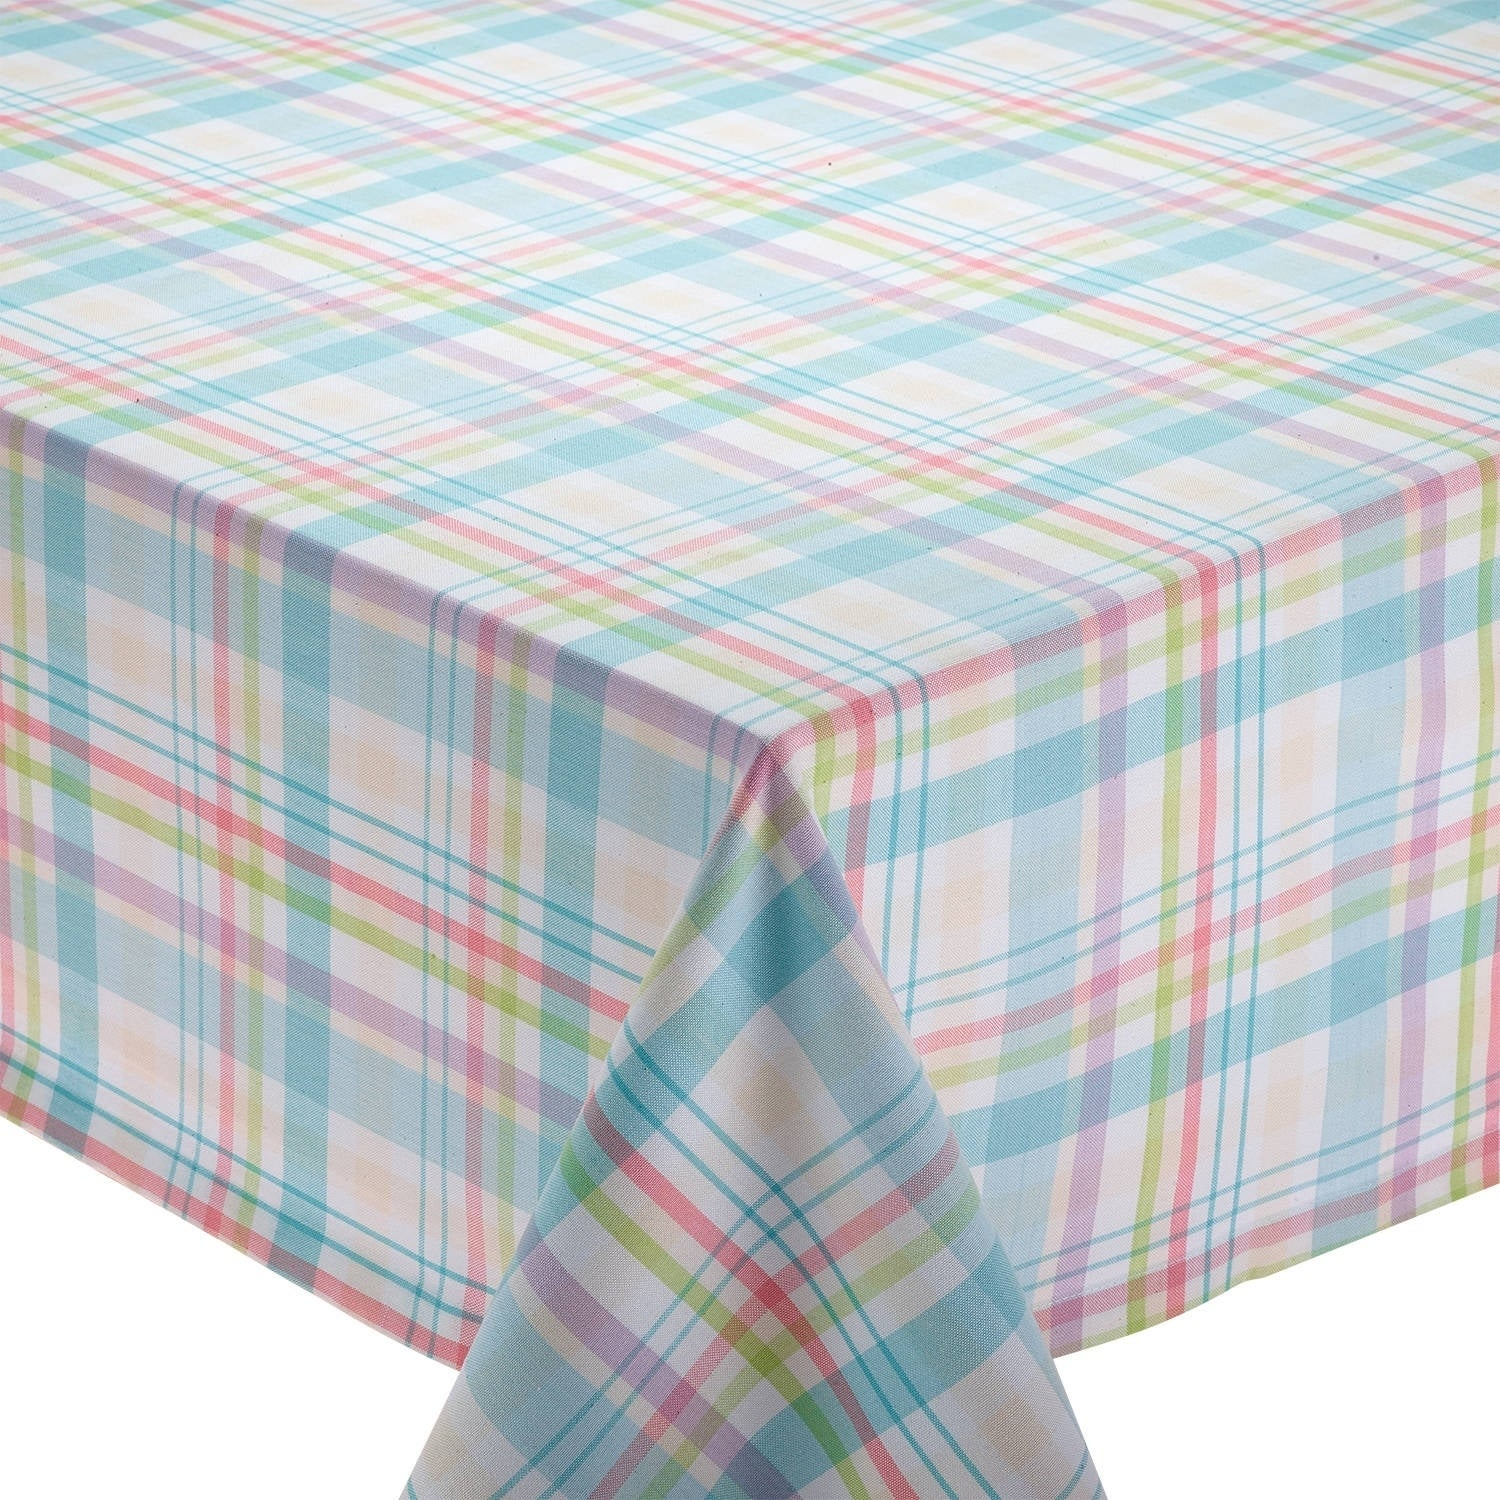 Cotton Easter Basket Plaid 70-inch Round Tablecloth (East...